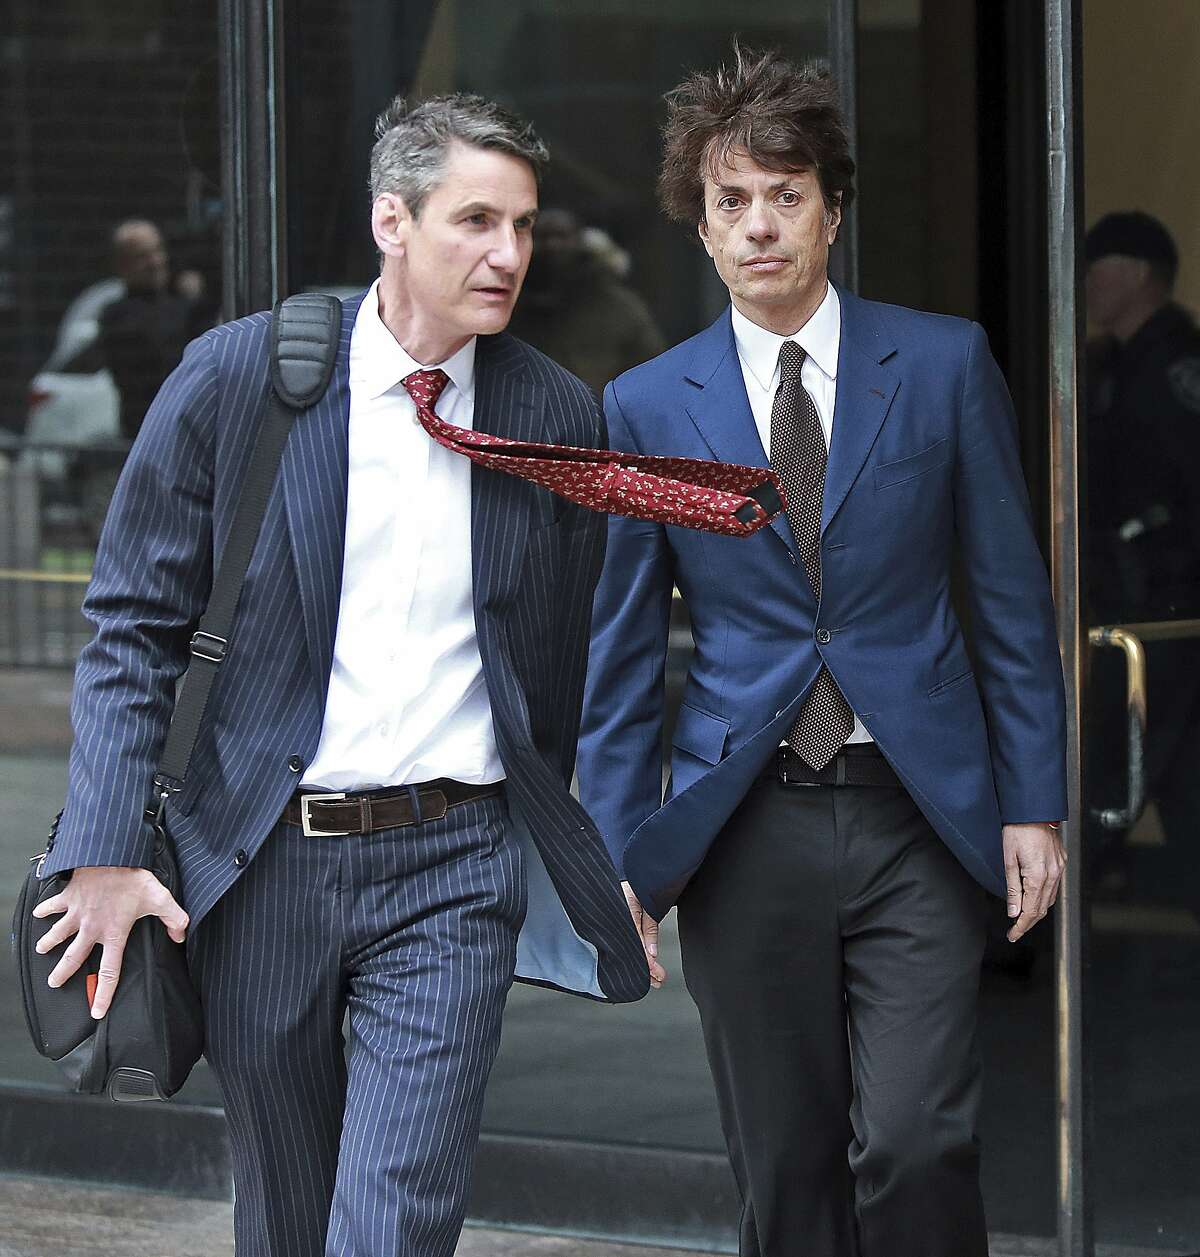 Agustin Huneeus, right, a 53-year-old San Francisco resident whose family owns vineyards in California's Napa Valley and in Oregon, leaves the federal courthouse after a hearing associated with the college admissions bribery scandal, Friday, March 29, 2019 in Boston. Huneeus is accused of paying at least $50,000 to have SAT administrators correct his daughter's college entrance exam and to have USC officials designate her as a water polo recruit. (Matt Stone/The Boston Herald via AP)